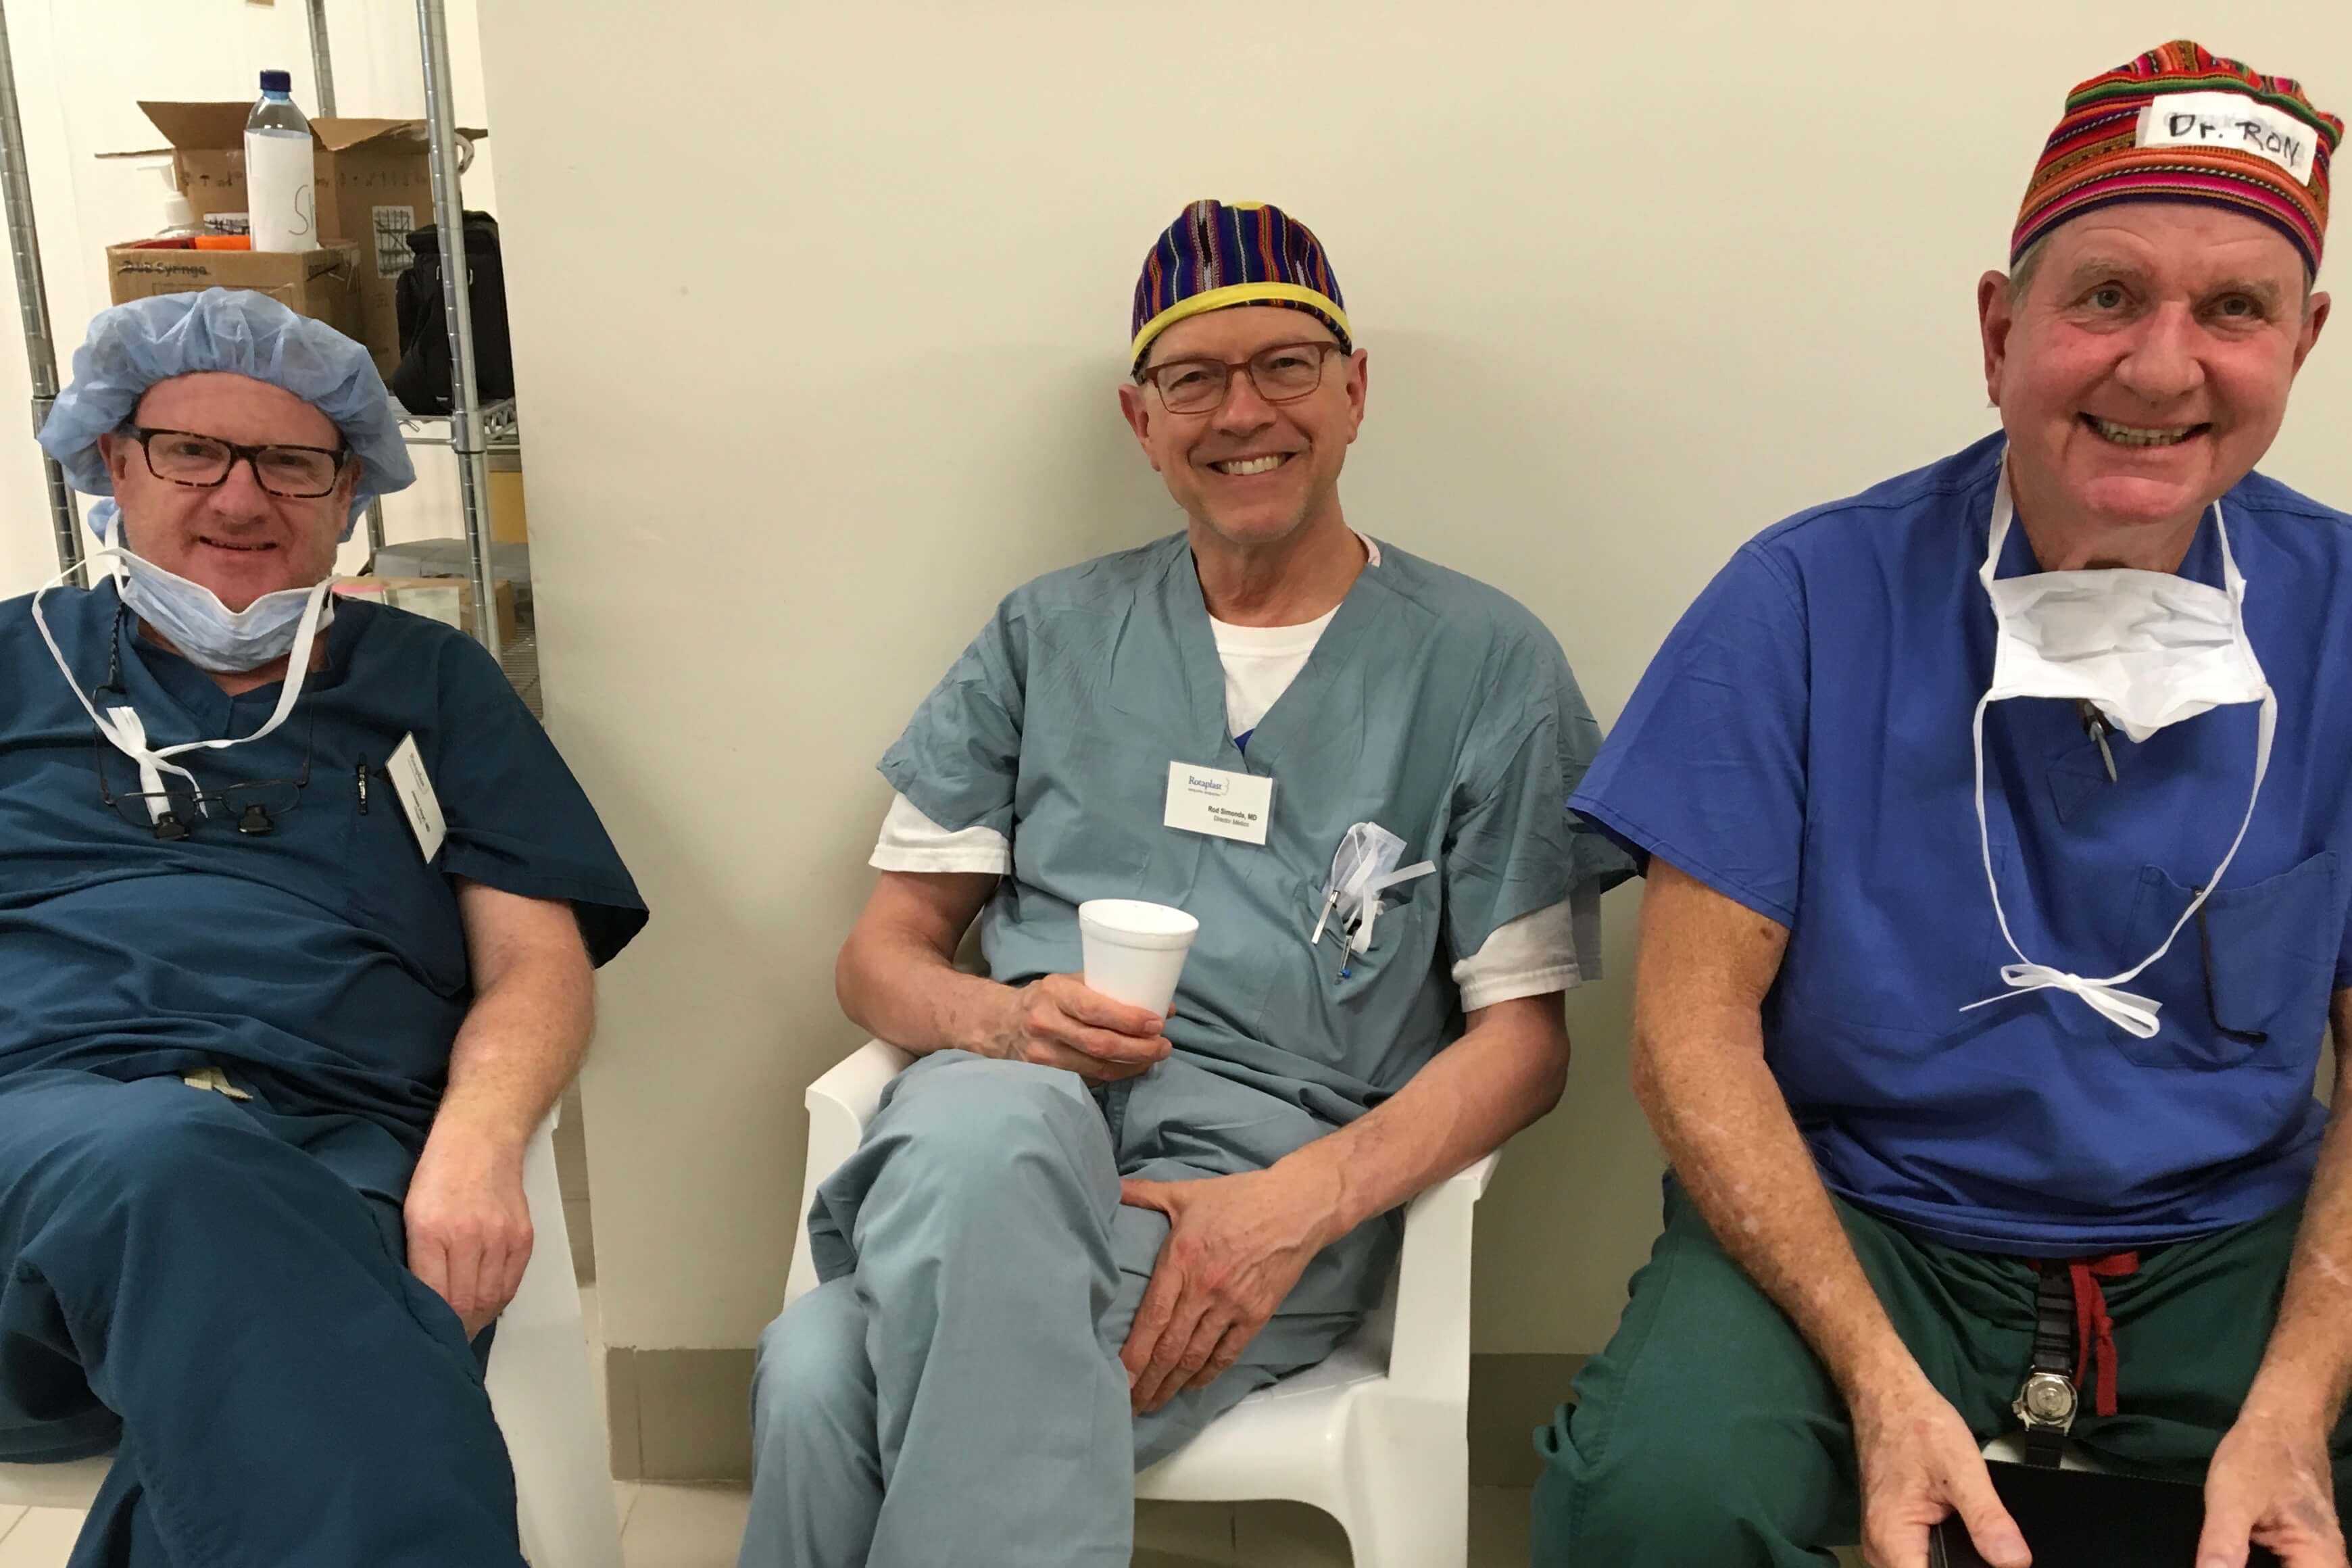 Surgeons James Hoyt (left), Medical Director Rod Simonds and Surgeon Ron Worland relax between patients.